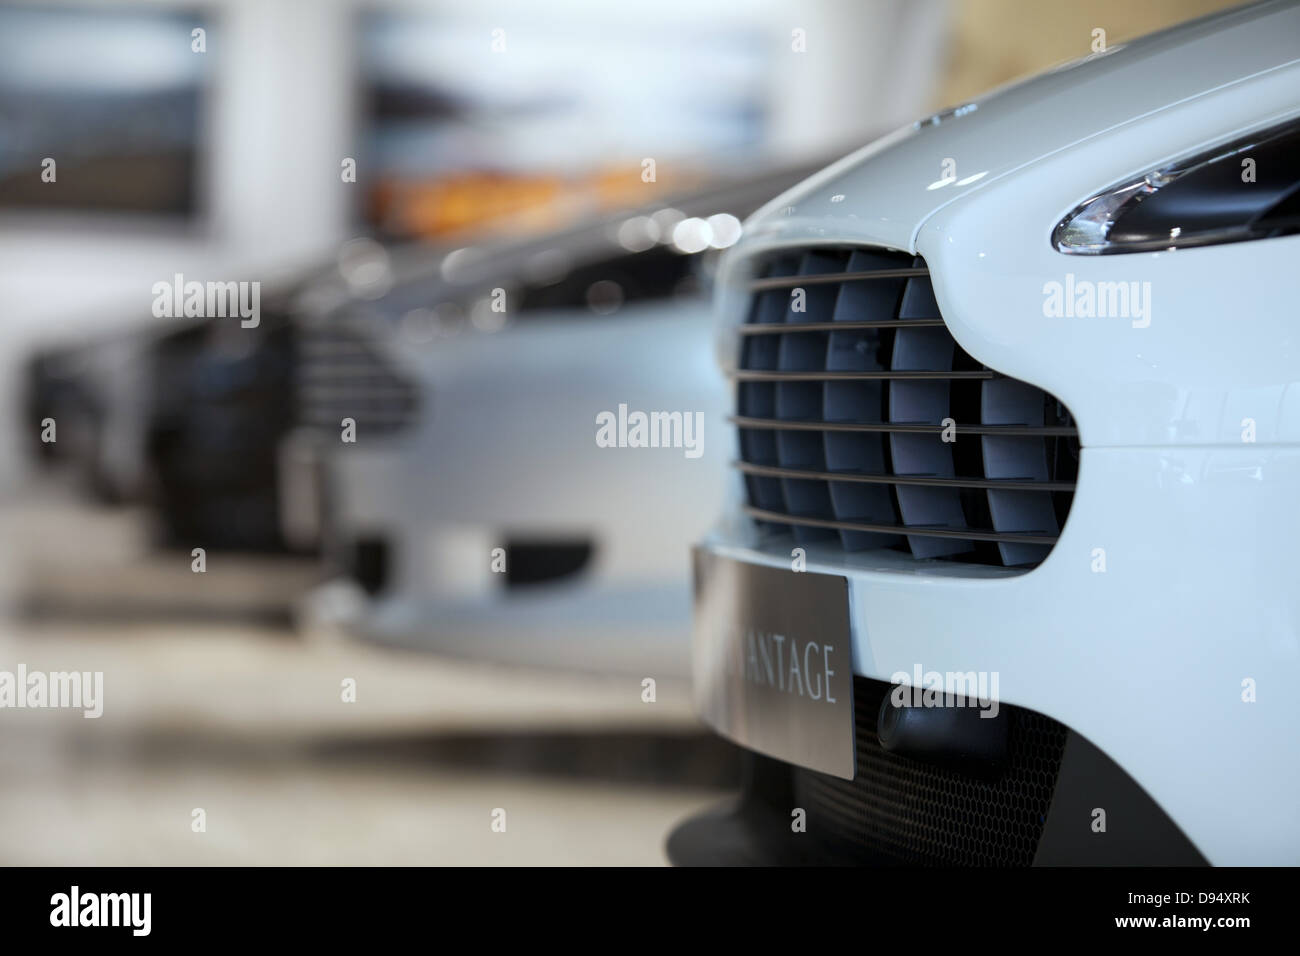 Aston Martin cars in a new car showroom in Leeds - Stock Image